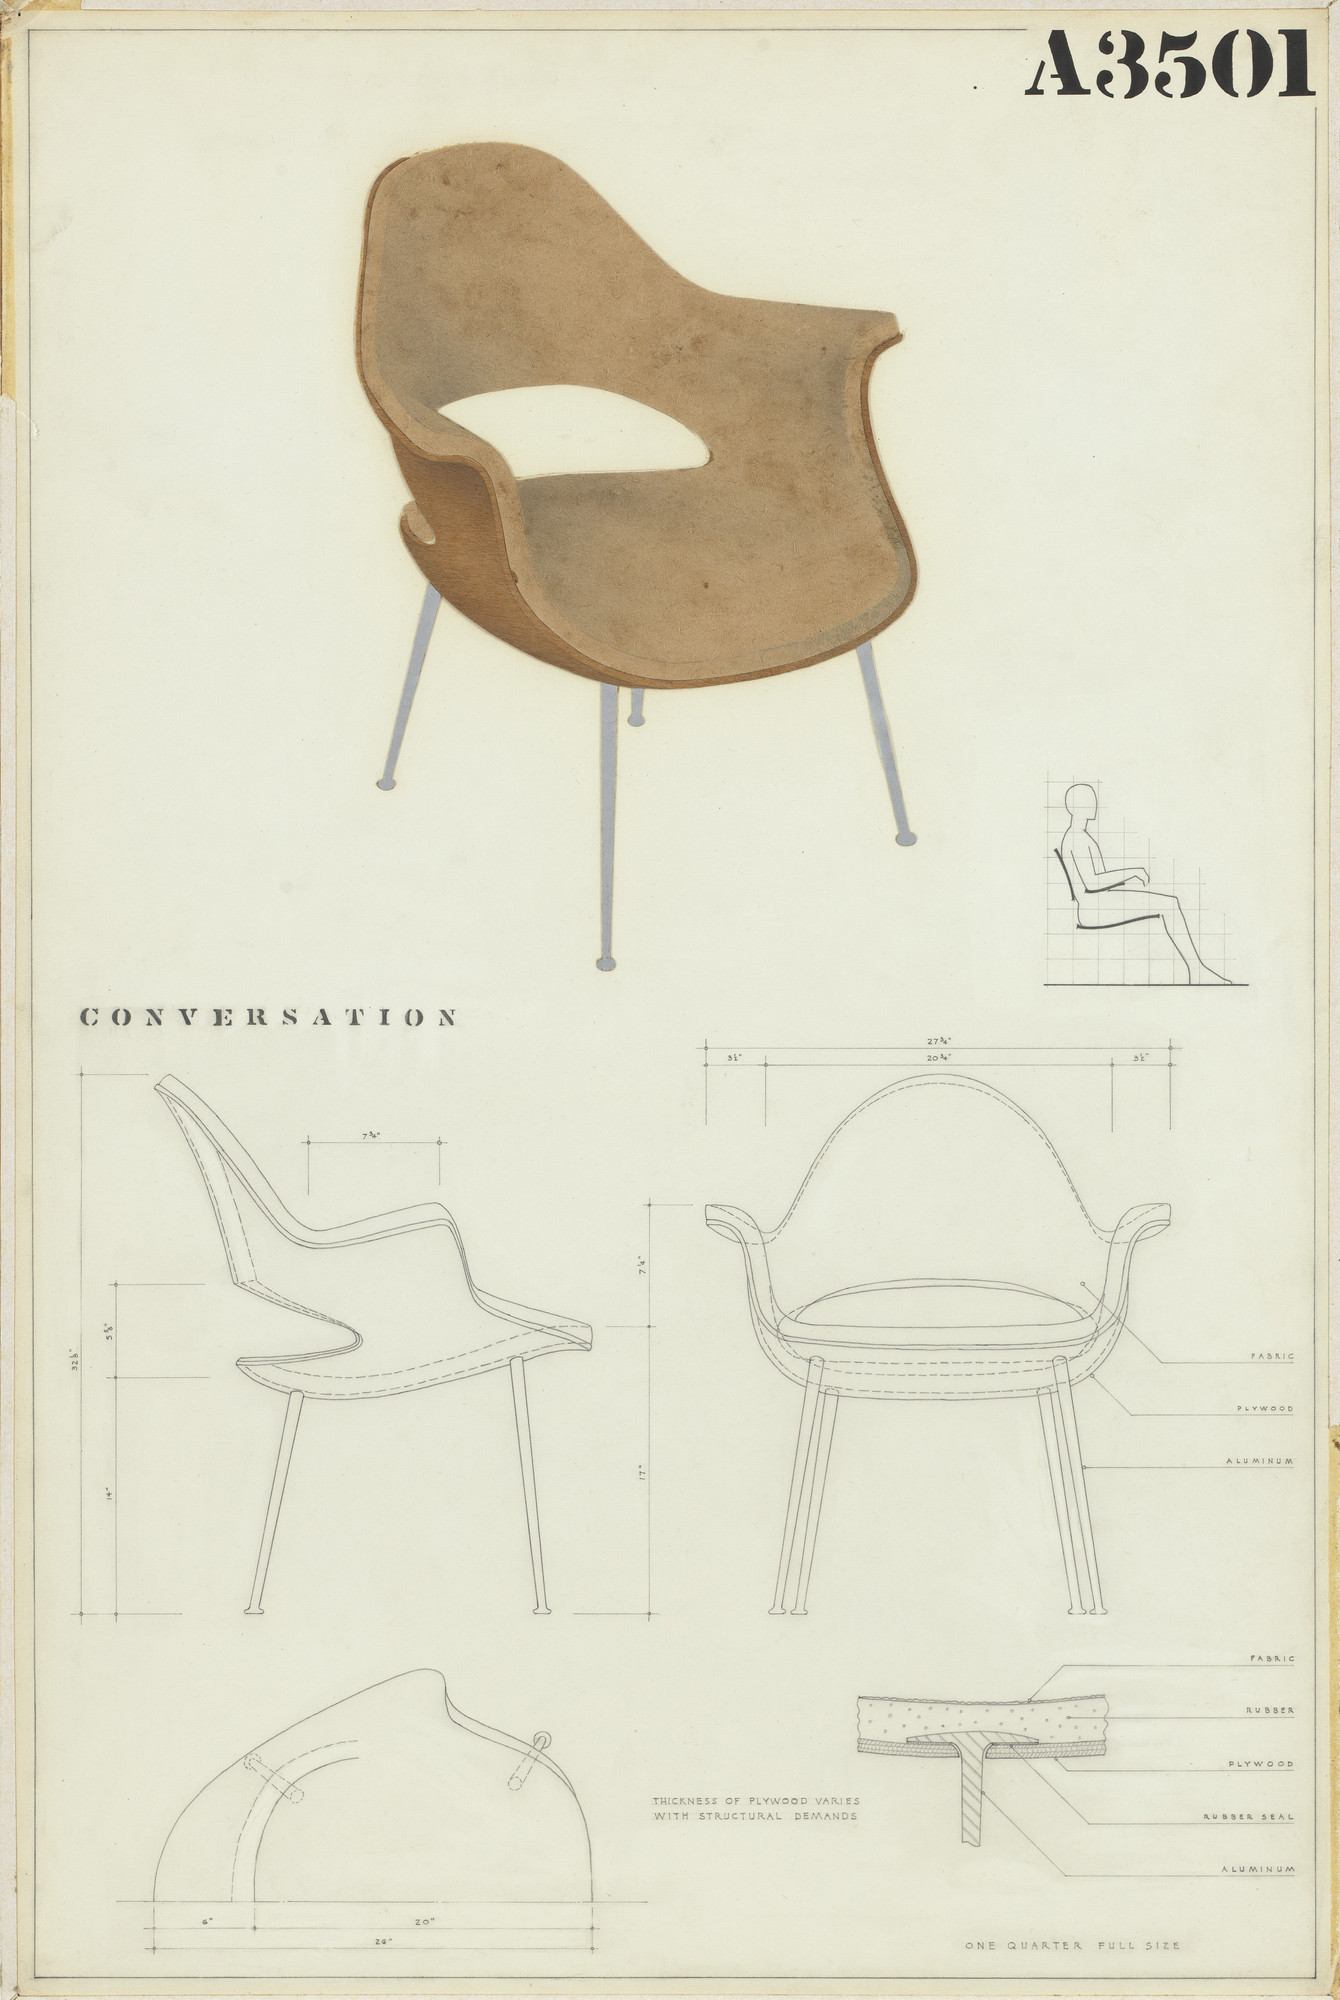 Charles Eames Eero Saarinen Low Back Armchair Entry Panel For Moma Competition For Organic Design In Home Furnishings 1940 Moma